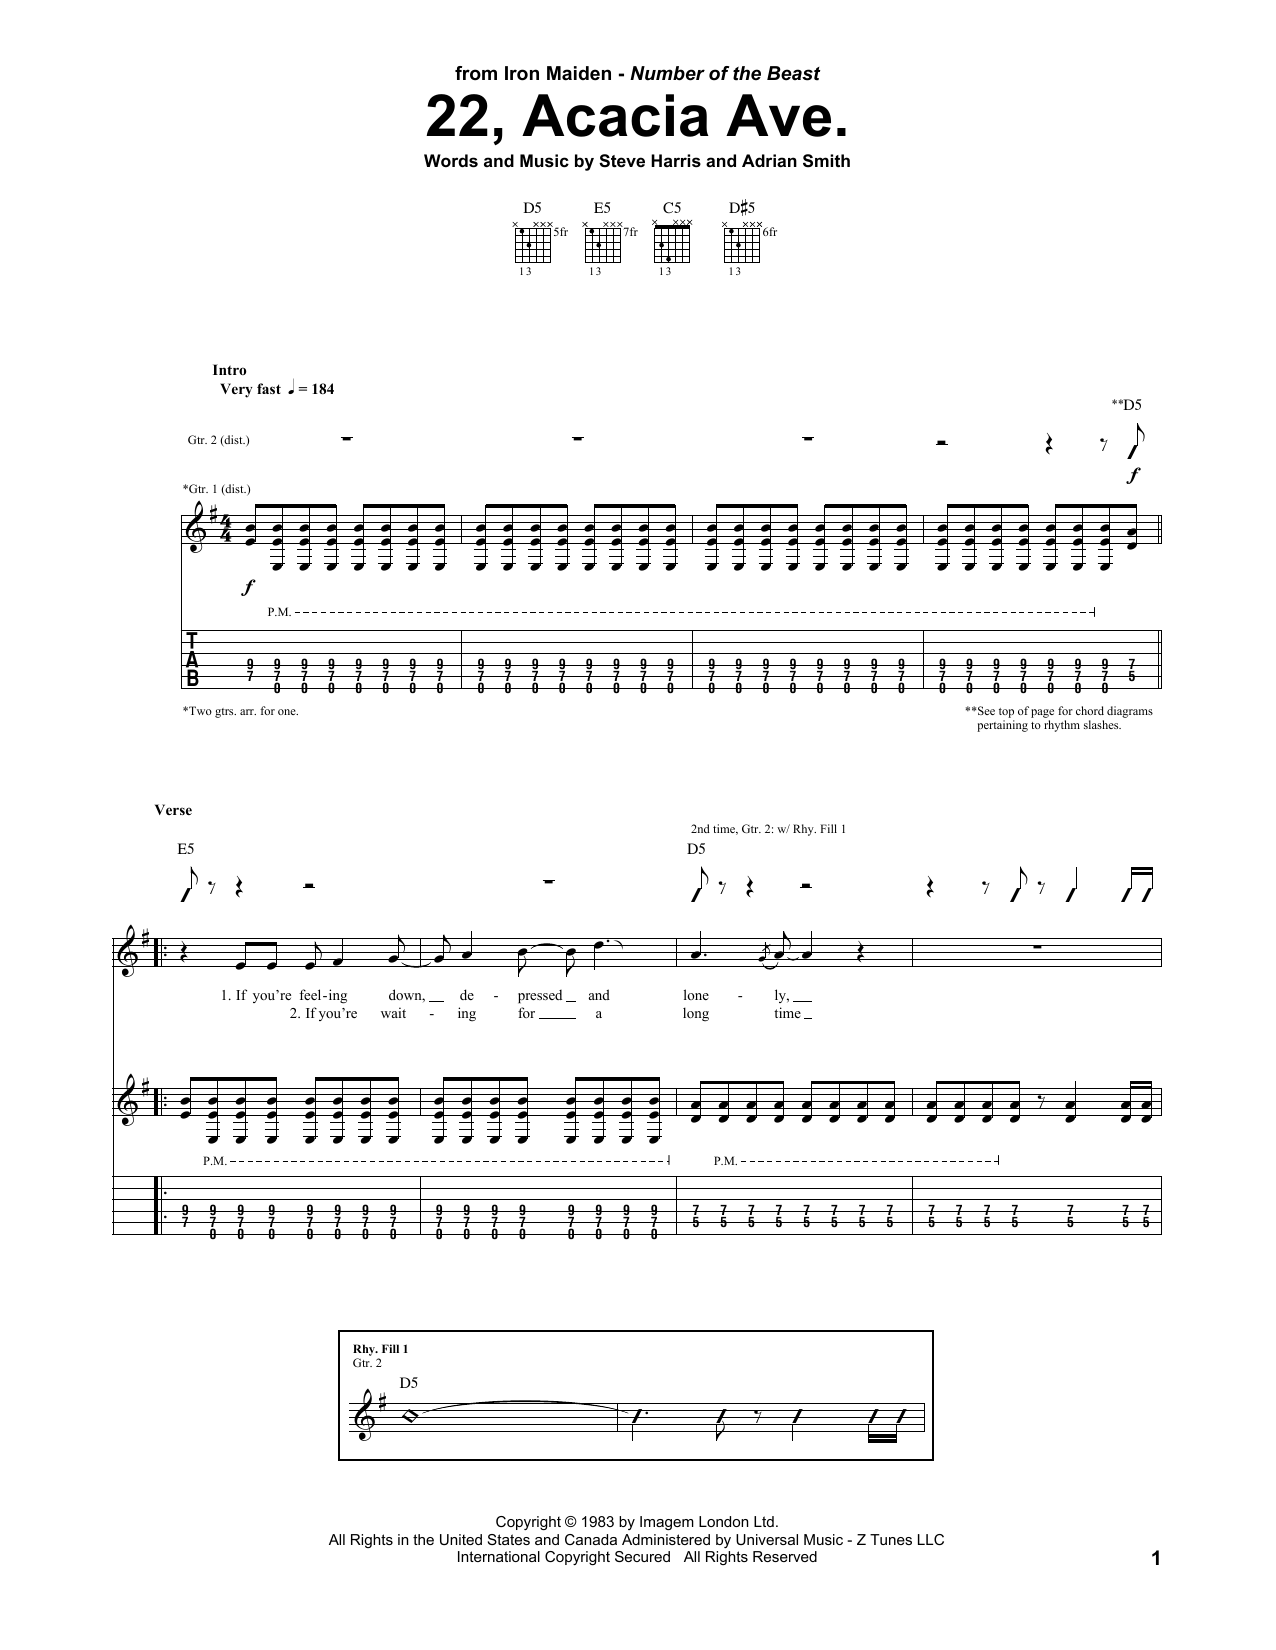 Iron Maiden 22, Acacia Ave. sheet music notes and chords